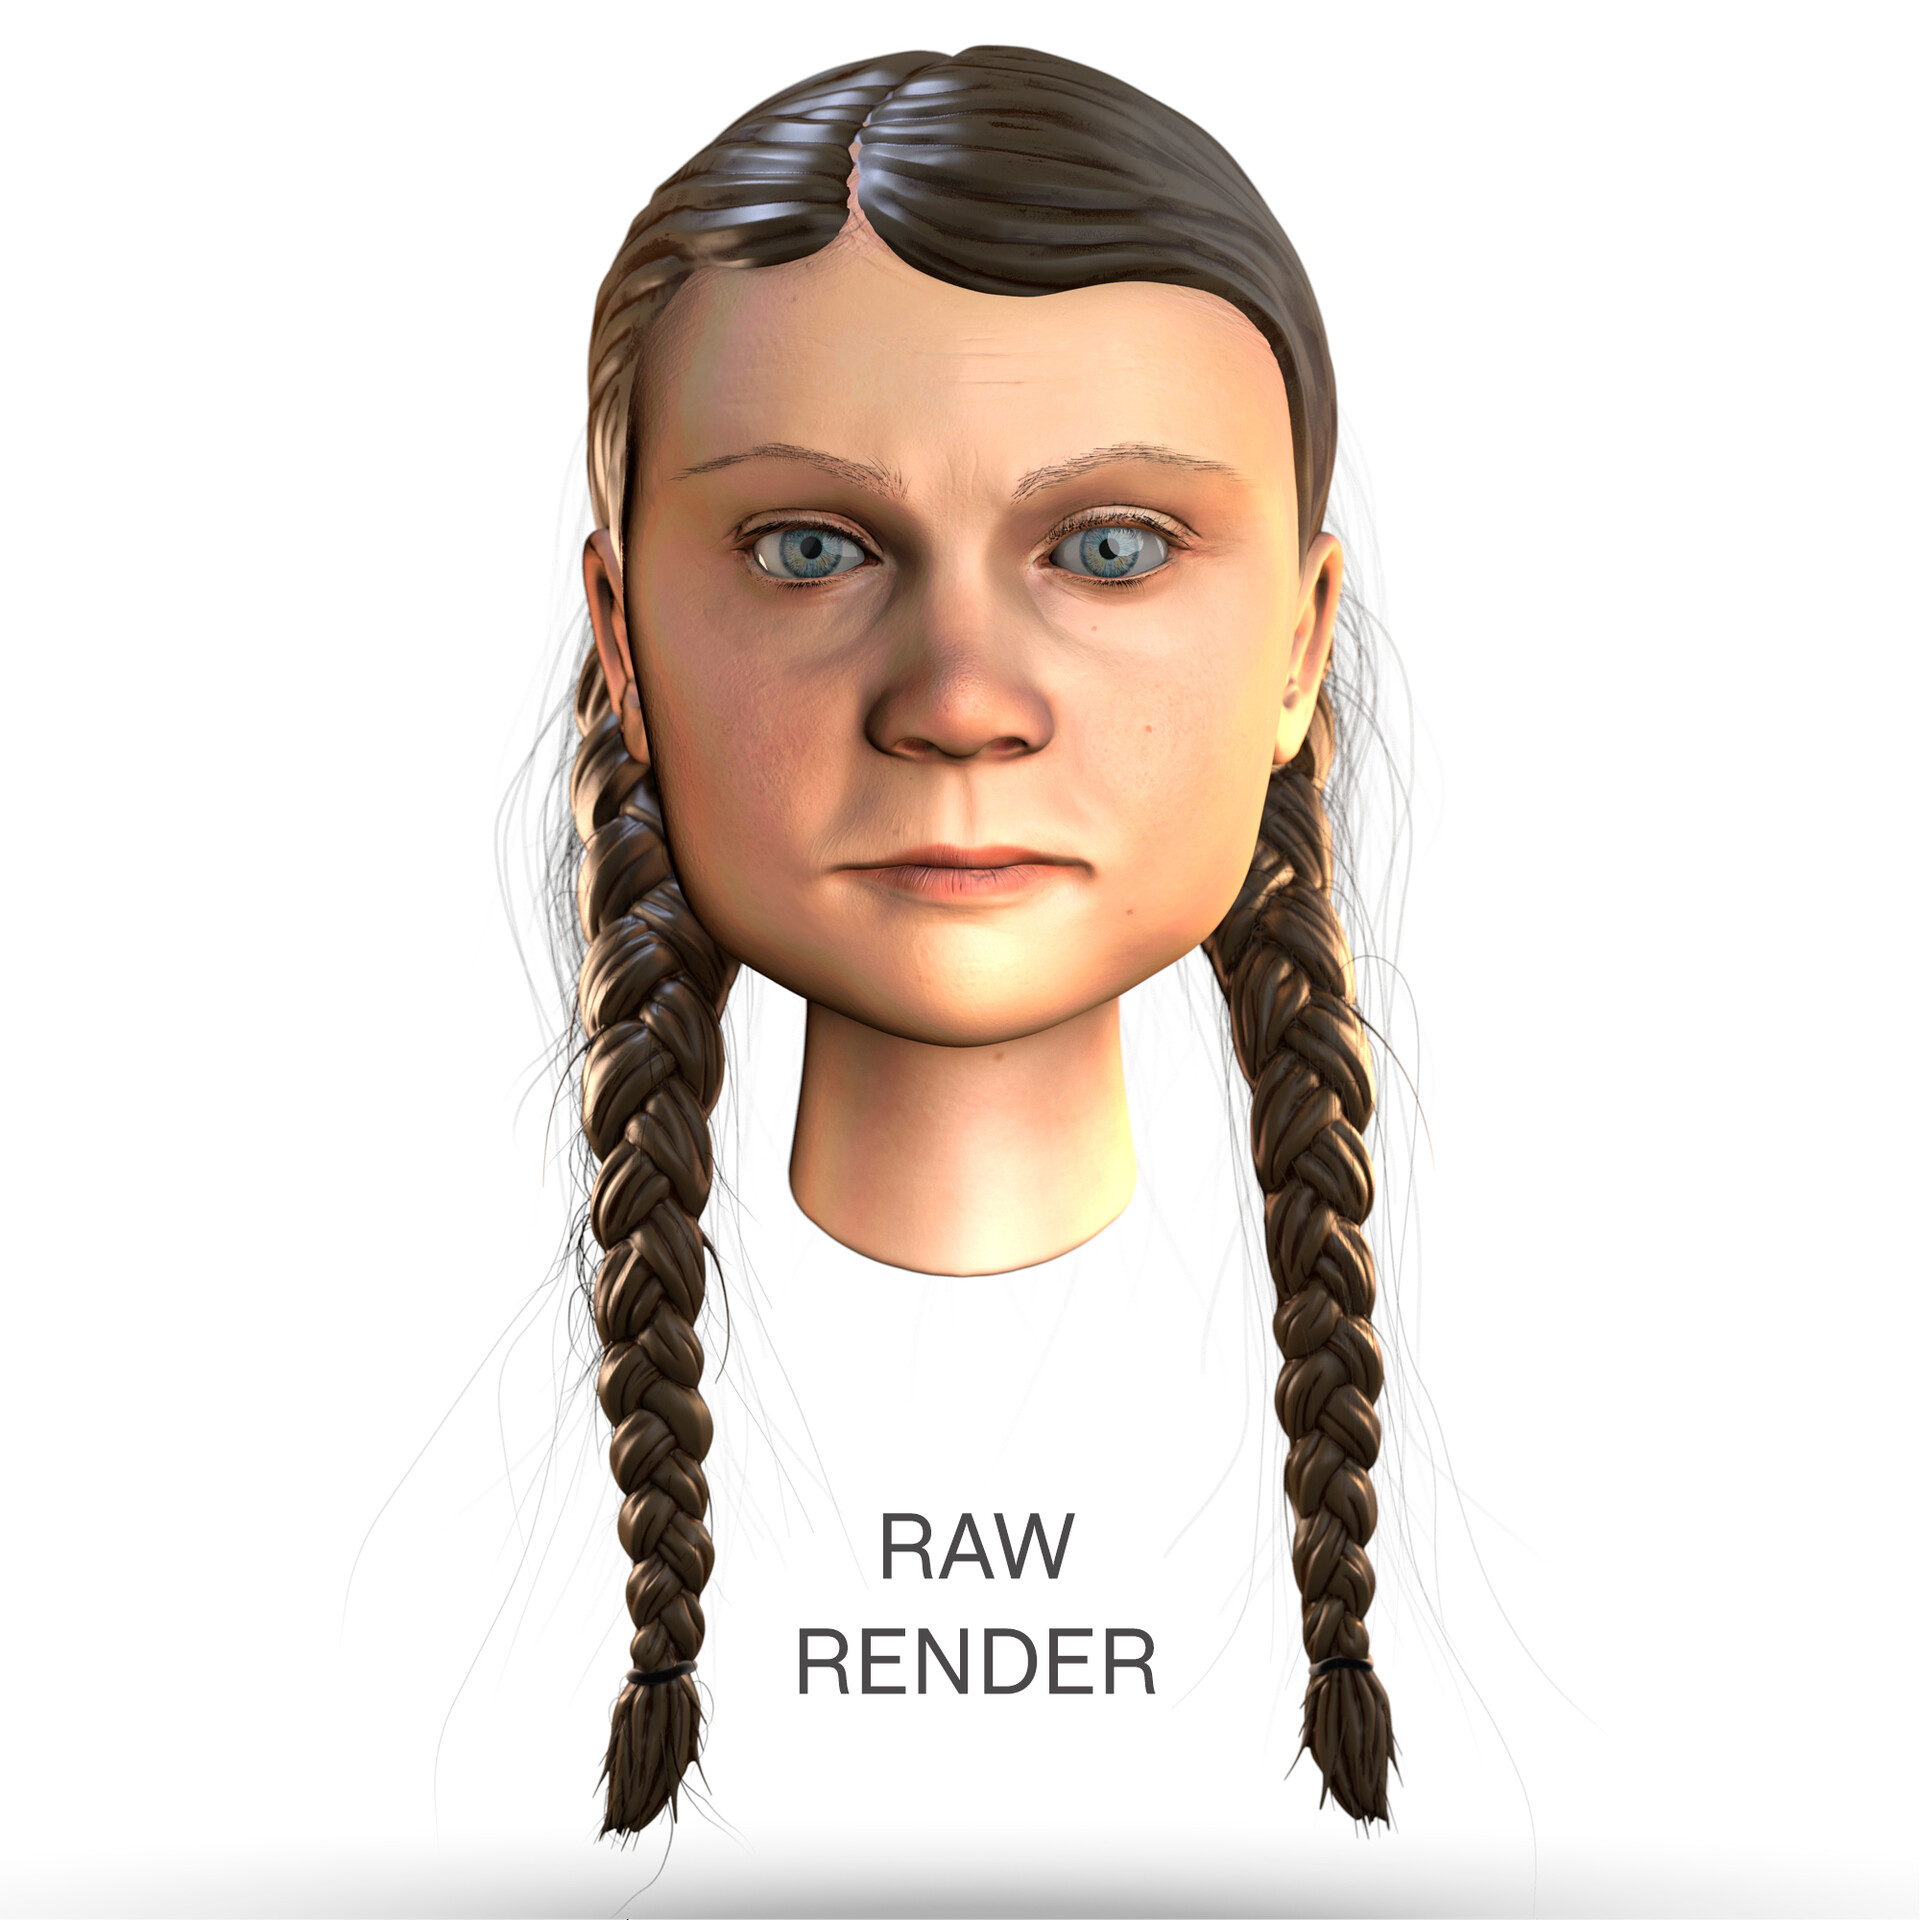 Paul marion wood raw render